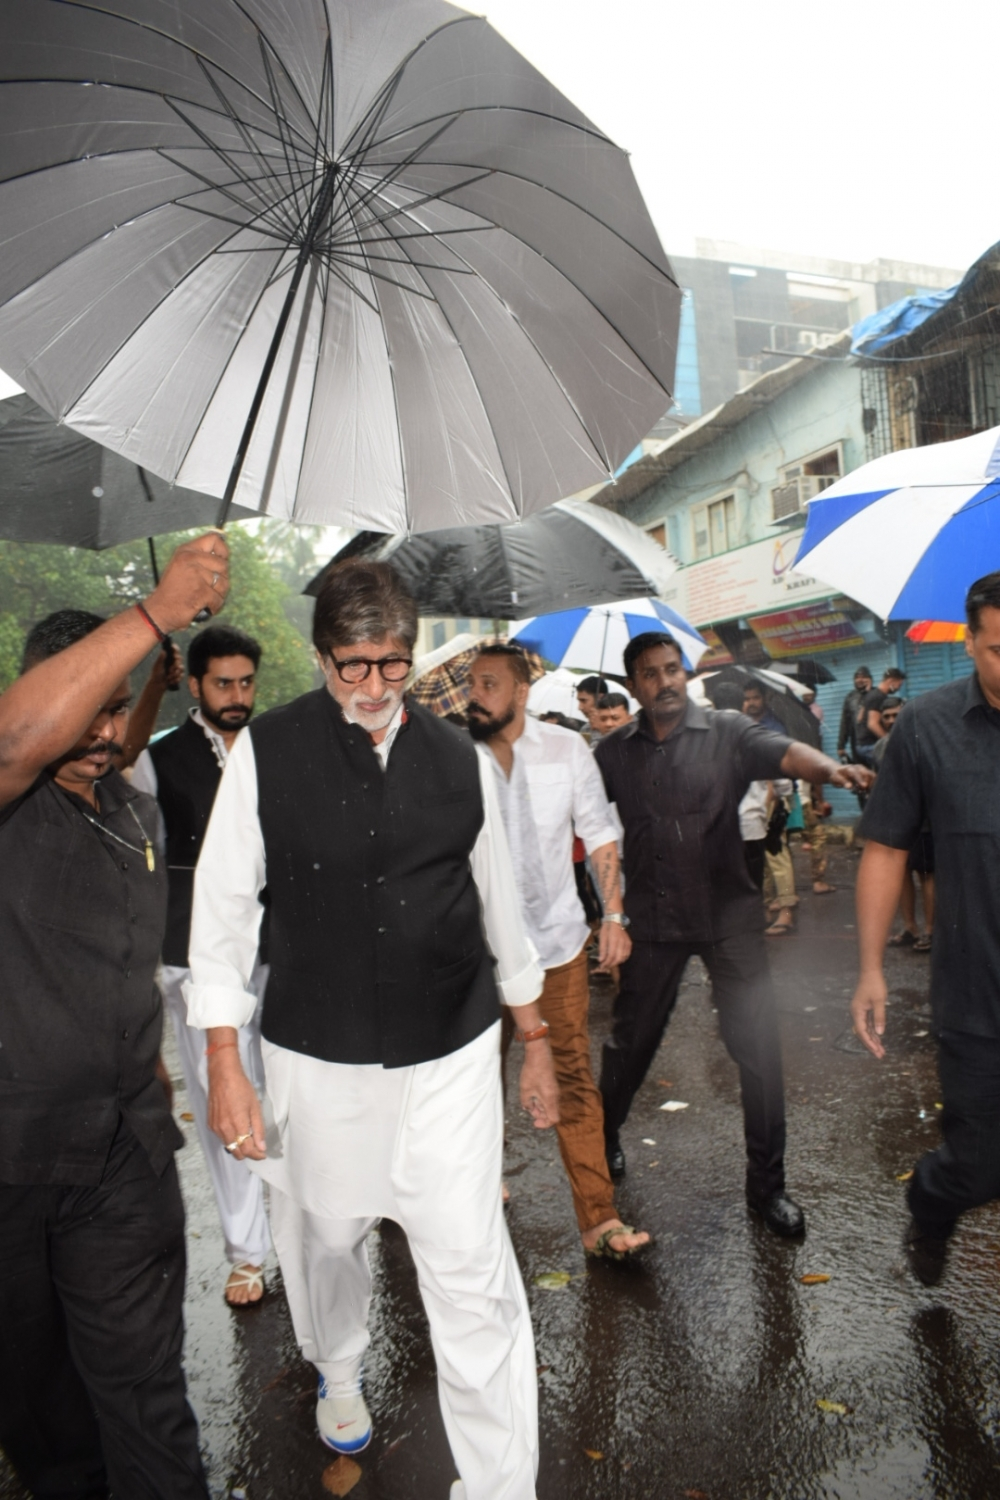 Actor Amitabh Bachchan paid respects at the state funeral on Tuesday. (Image credit: IANS)